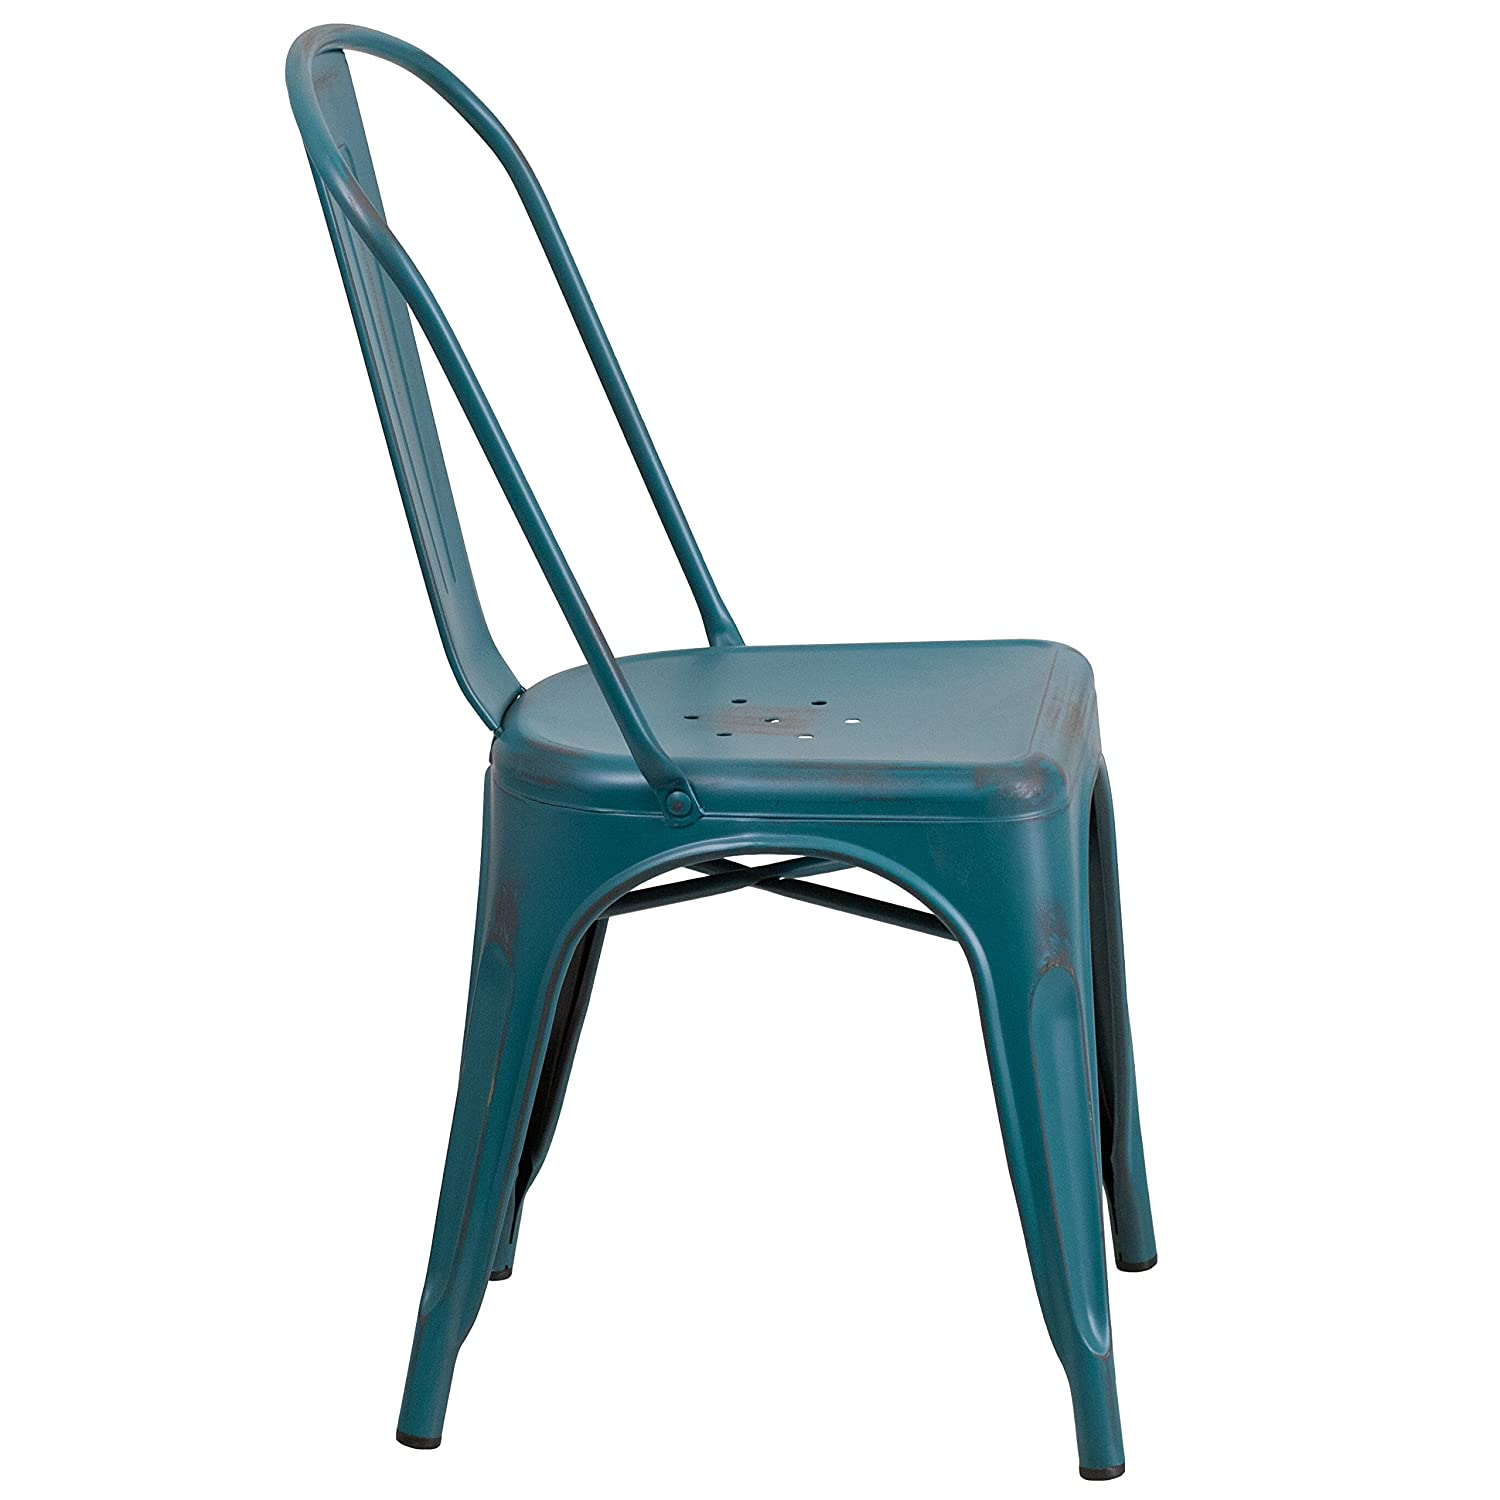 distressed metal furniture. Amazon.com: Flash Furniture Distressed Kelly Blue-Teal Metal Indoor-Outdoor Stackable Chair: Kitchen \u0026 Dining